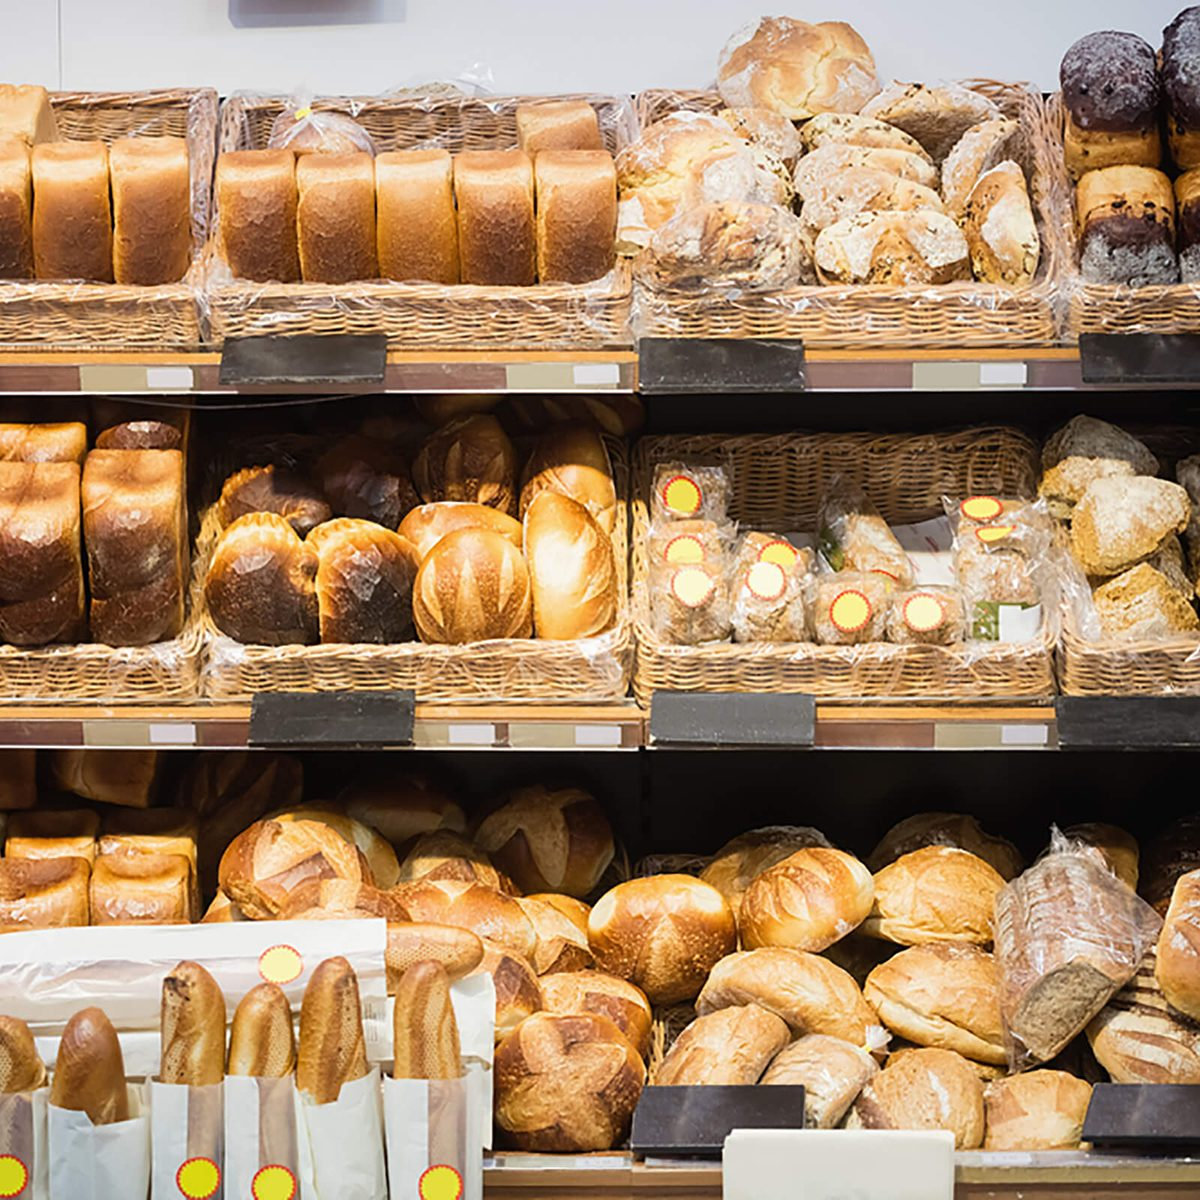 Focus on shelves with bread in a supermarket; Shutterstock ID 547958857